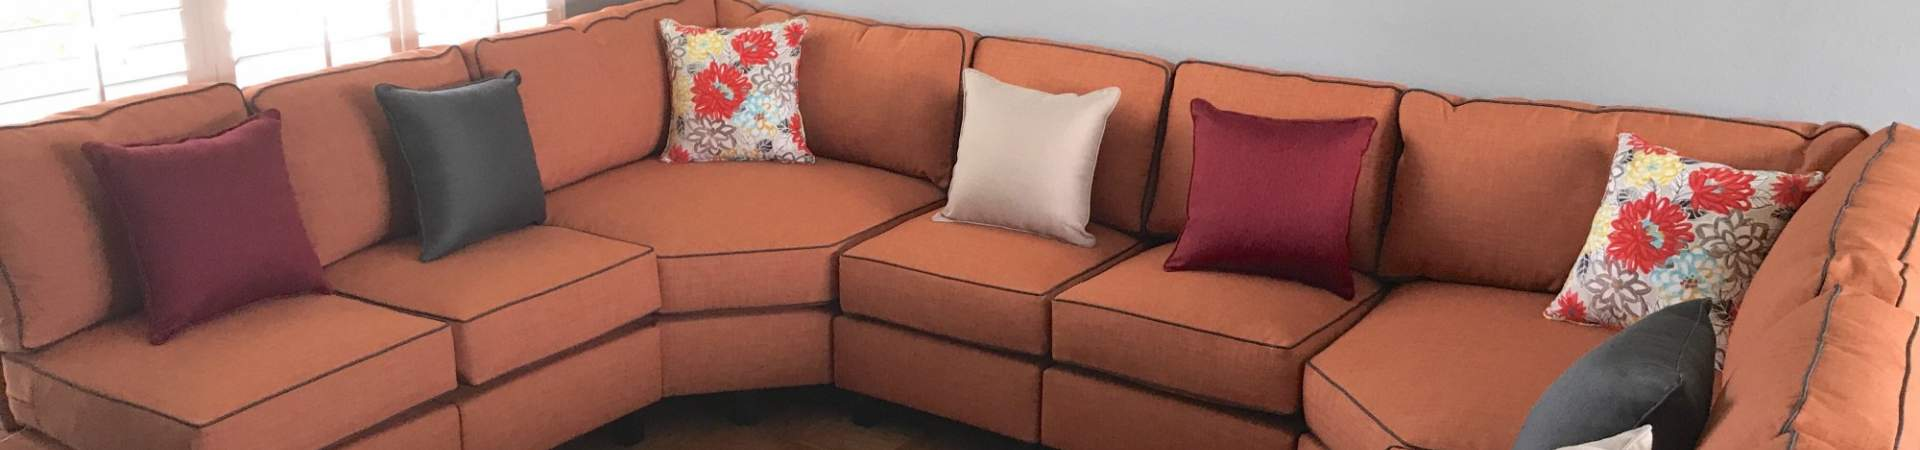 What are the dimensions of sectional sofas?